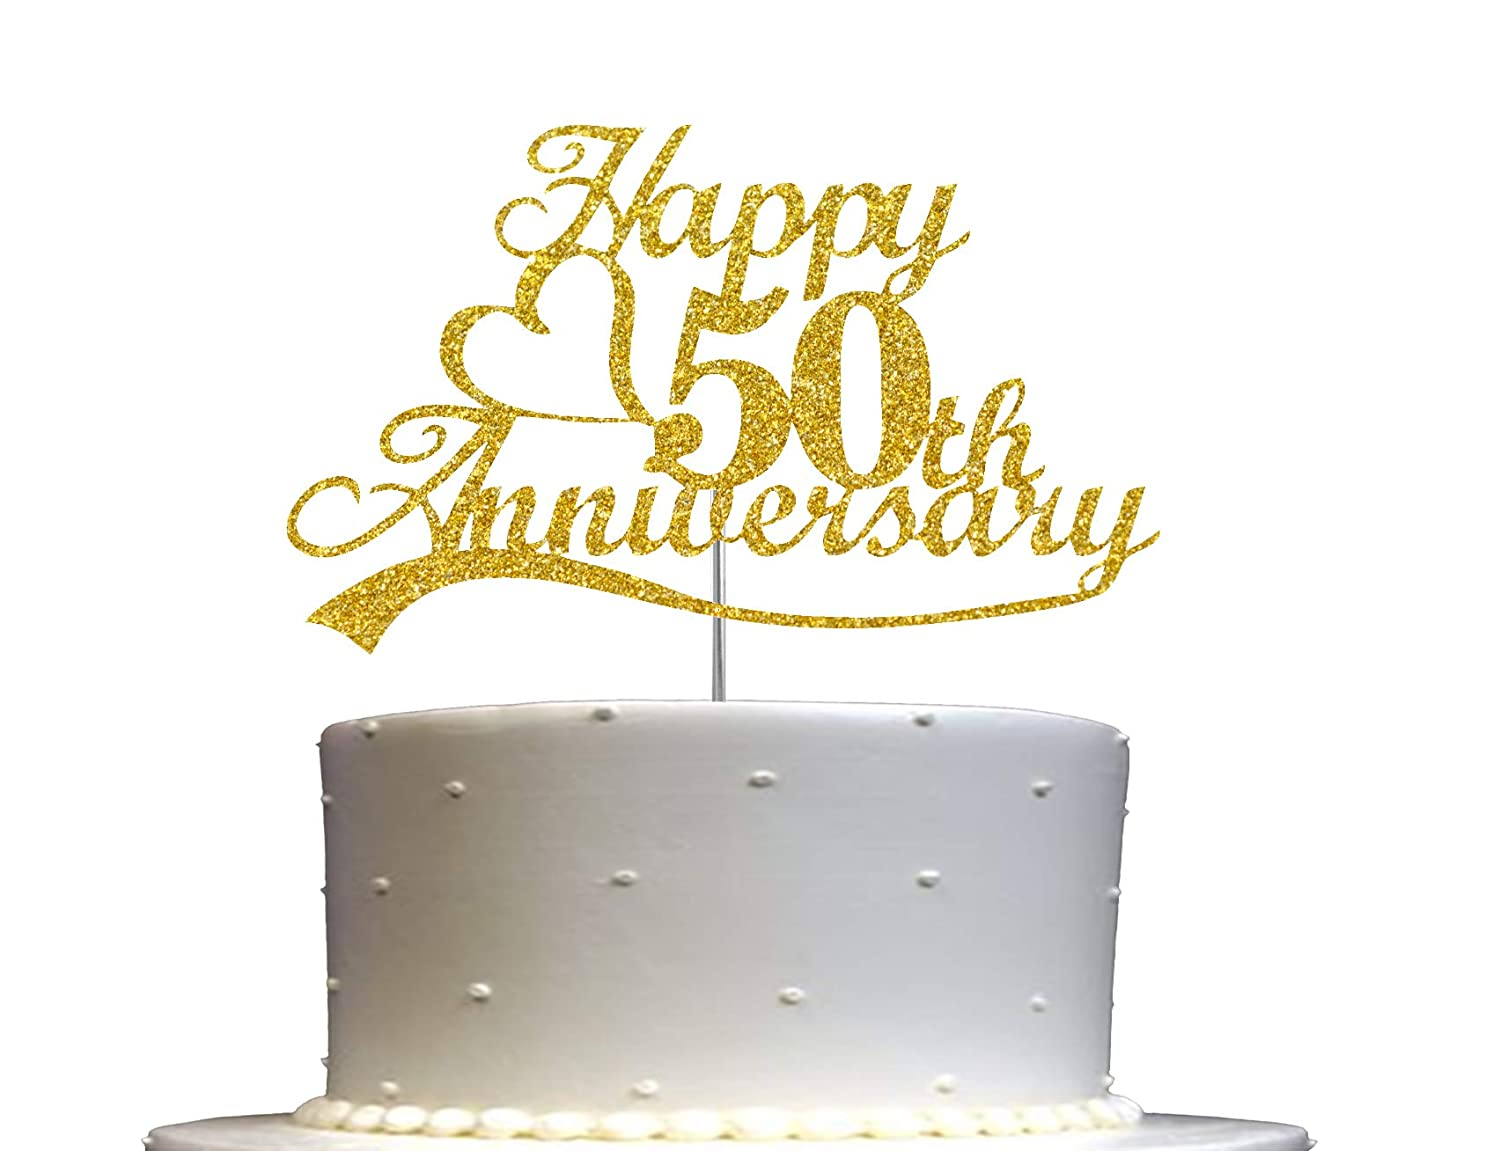 50th Anniversary Cake Topper Gold Glitter, 50 Wedding Anniversary Party Decoration Ideas, Premium Quality, Sturdy Doubled Sided Glitter, Acrylic Stick. Made in USA